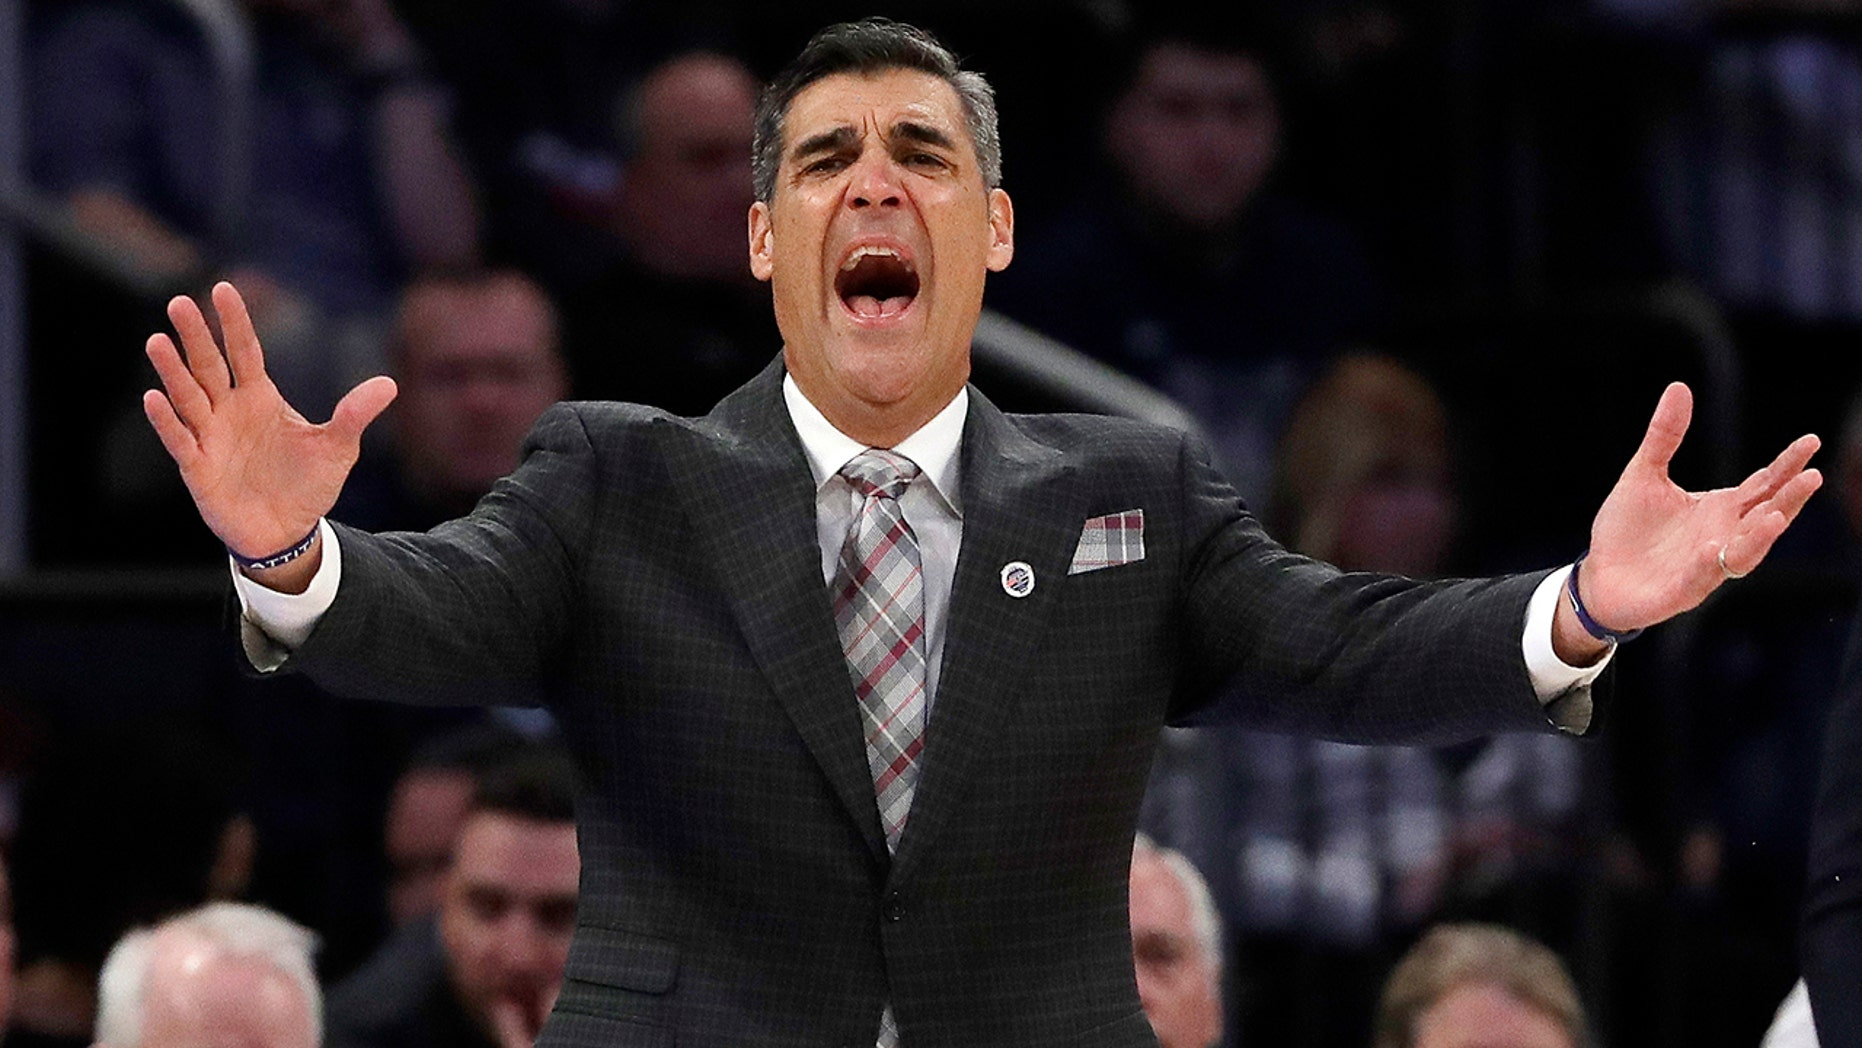 FILE - In this March 14, 2019, file photo, Villanova head coach Jay Wright reacts during the first half of an NCAA college basketball game against Providence at the Big East Conference tournament in New York. Wright is starting his 19th season at Villanova, where he is already the winningest coach in program history. (AP Photo/Frank Franklin II, File)